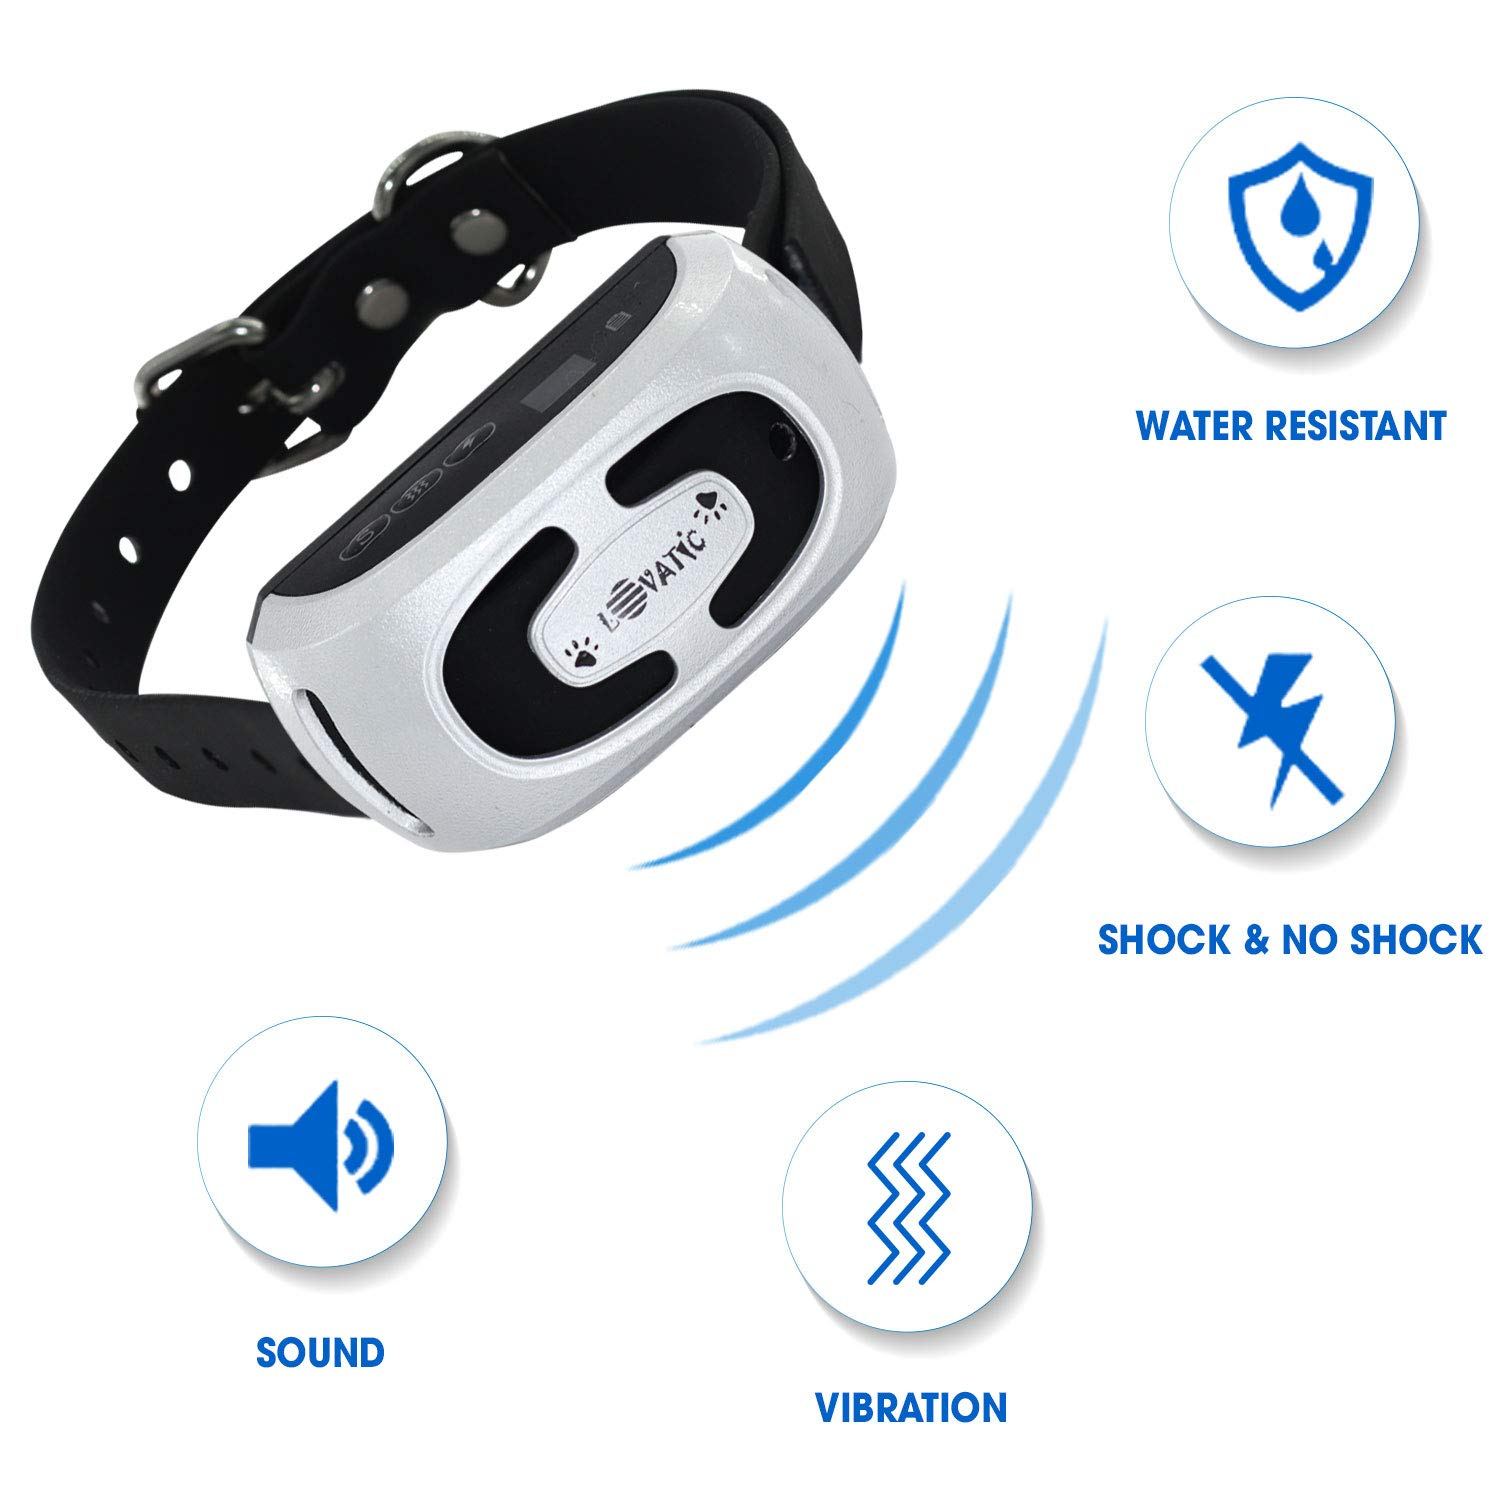 MONTAUR 2019 Automatic Bark Collar - Upgraded Rechargeable Barking Collar for Dogs - Newest Version Waterproof Bark Control Collar - Humane and Safe Dog Bark Collar for Dogs